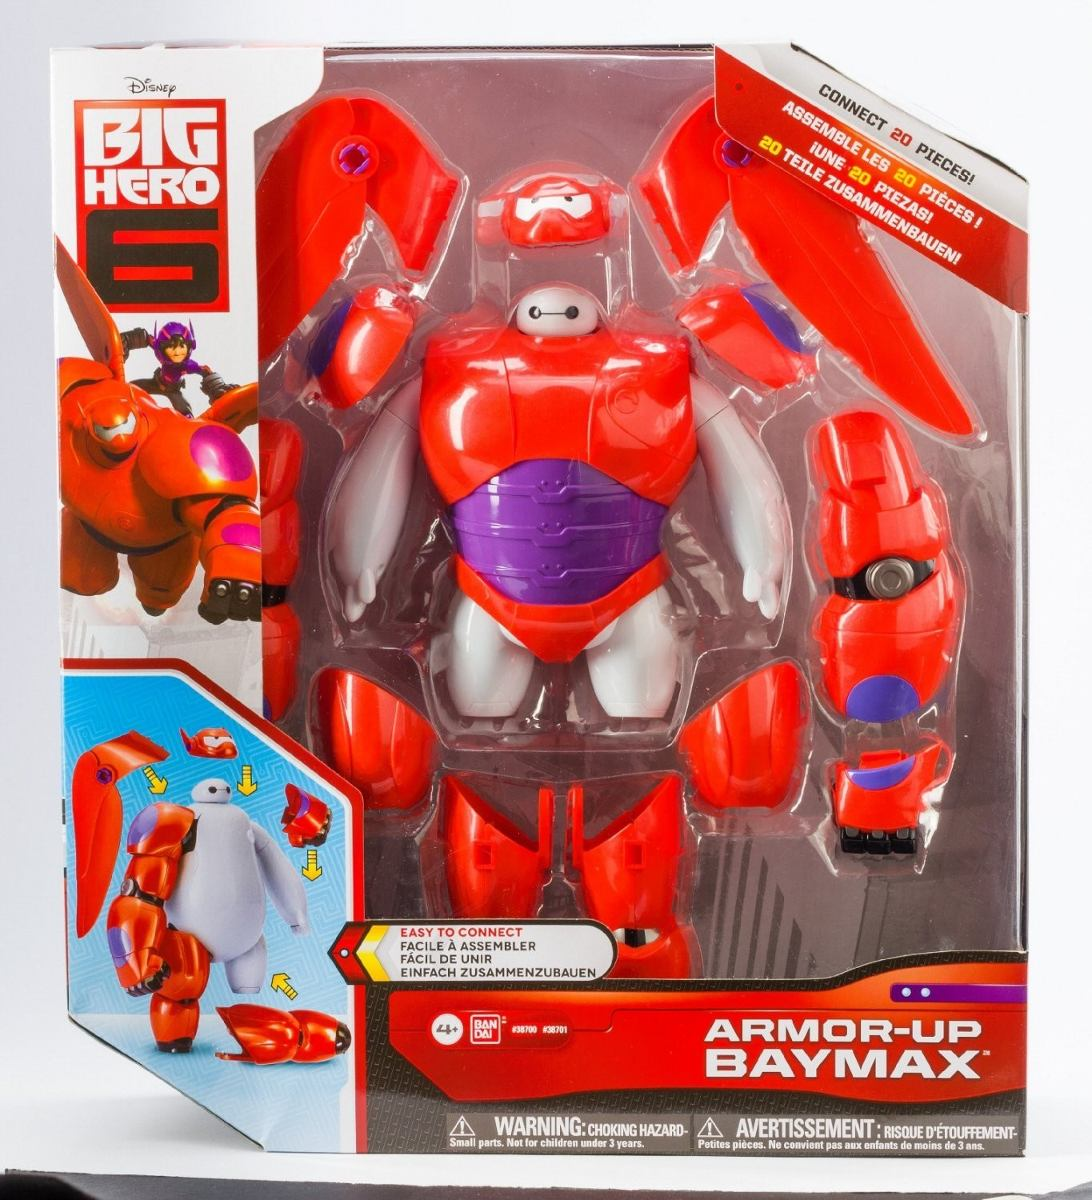 Muneco Big Hero 6 Armor Up Baymax Action Figure